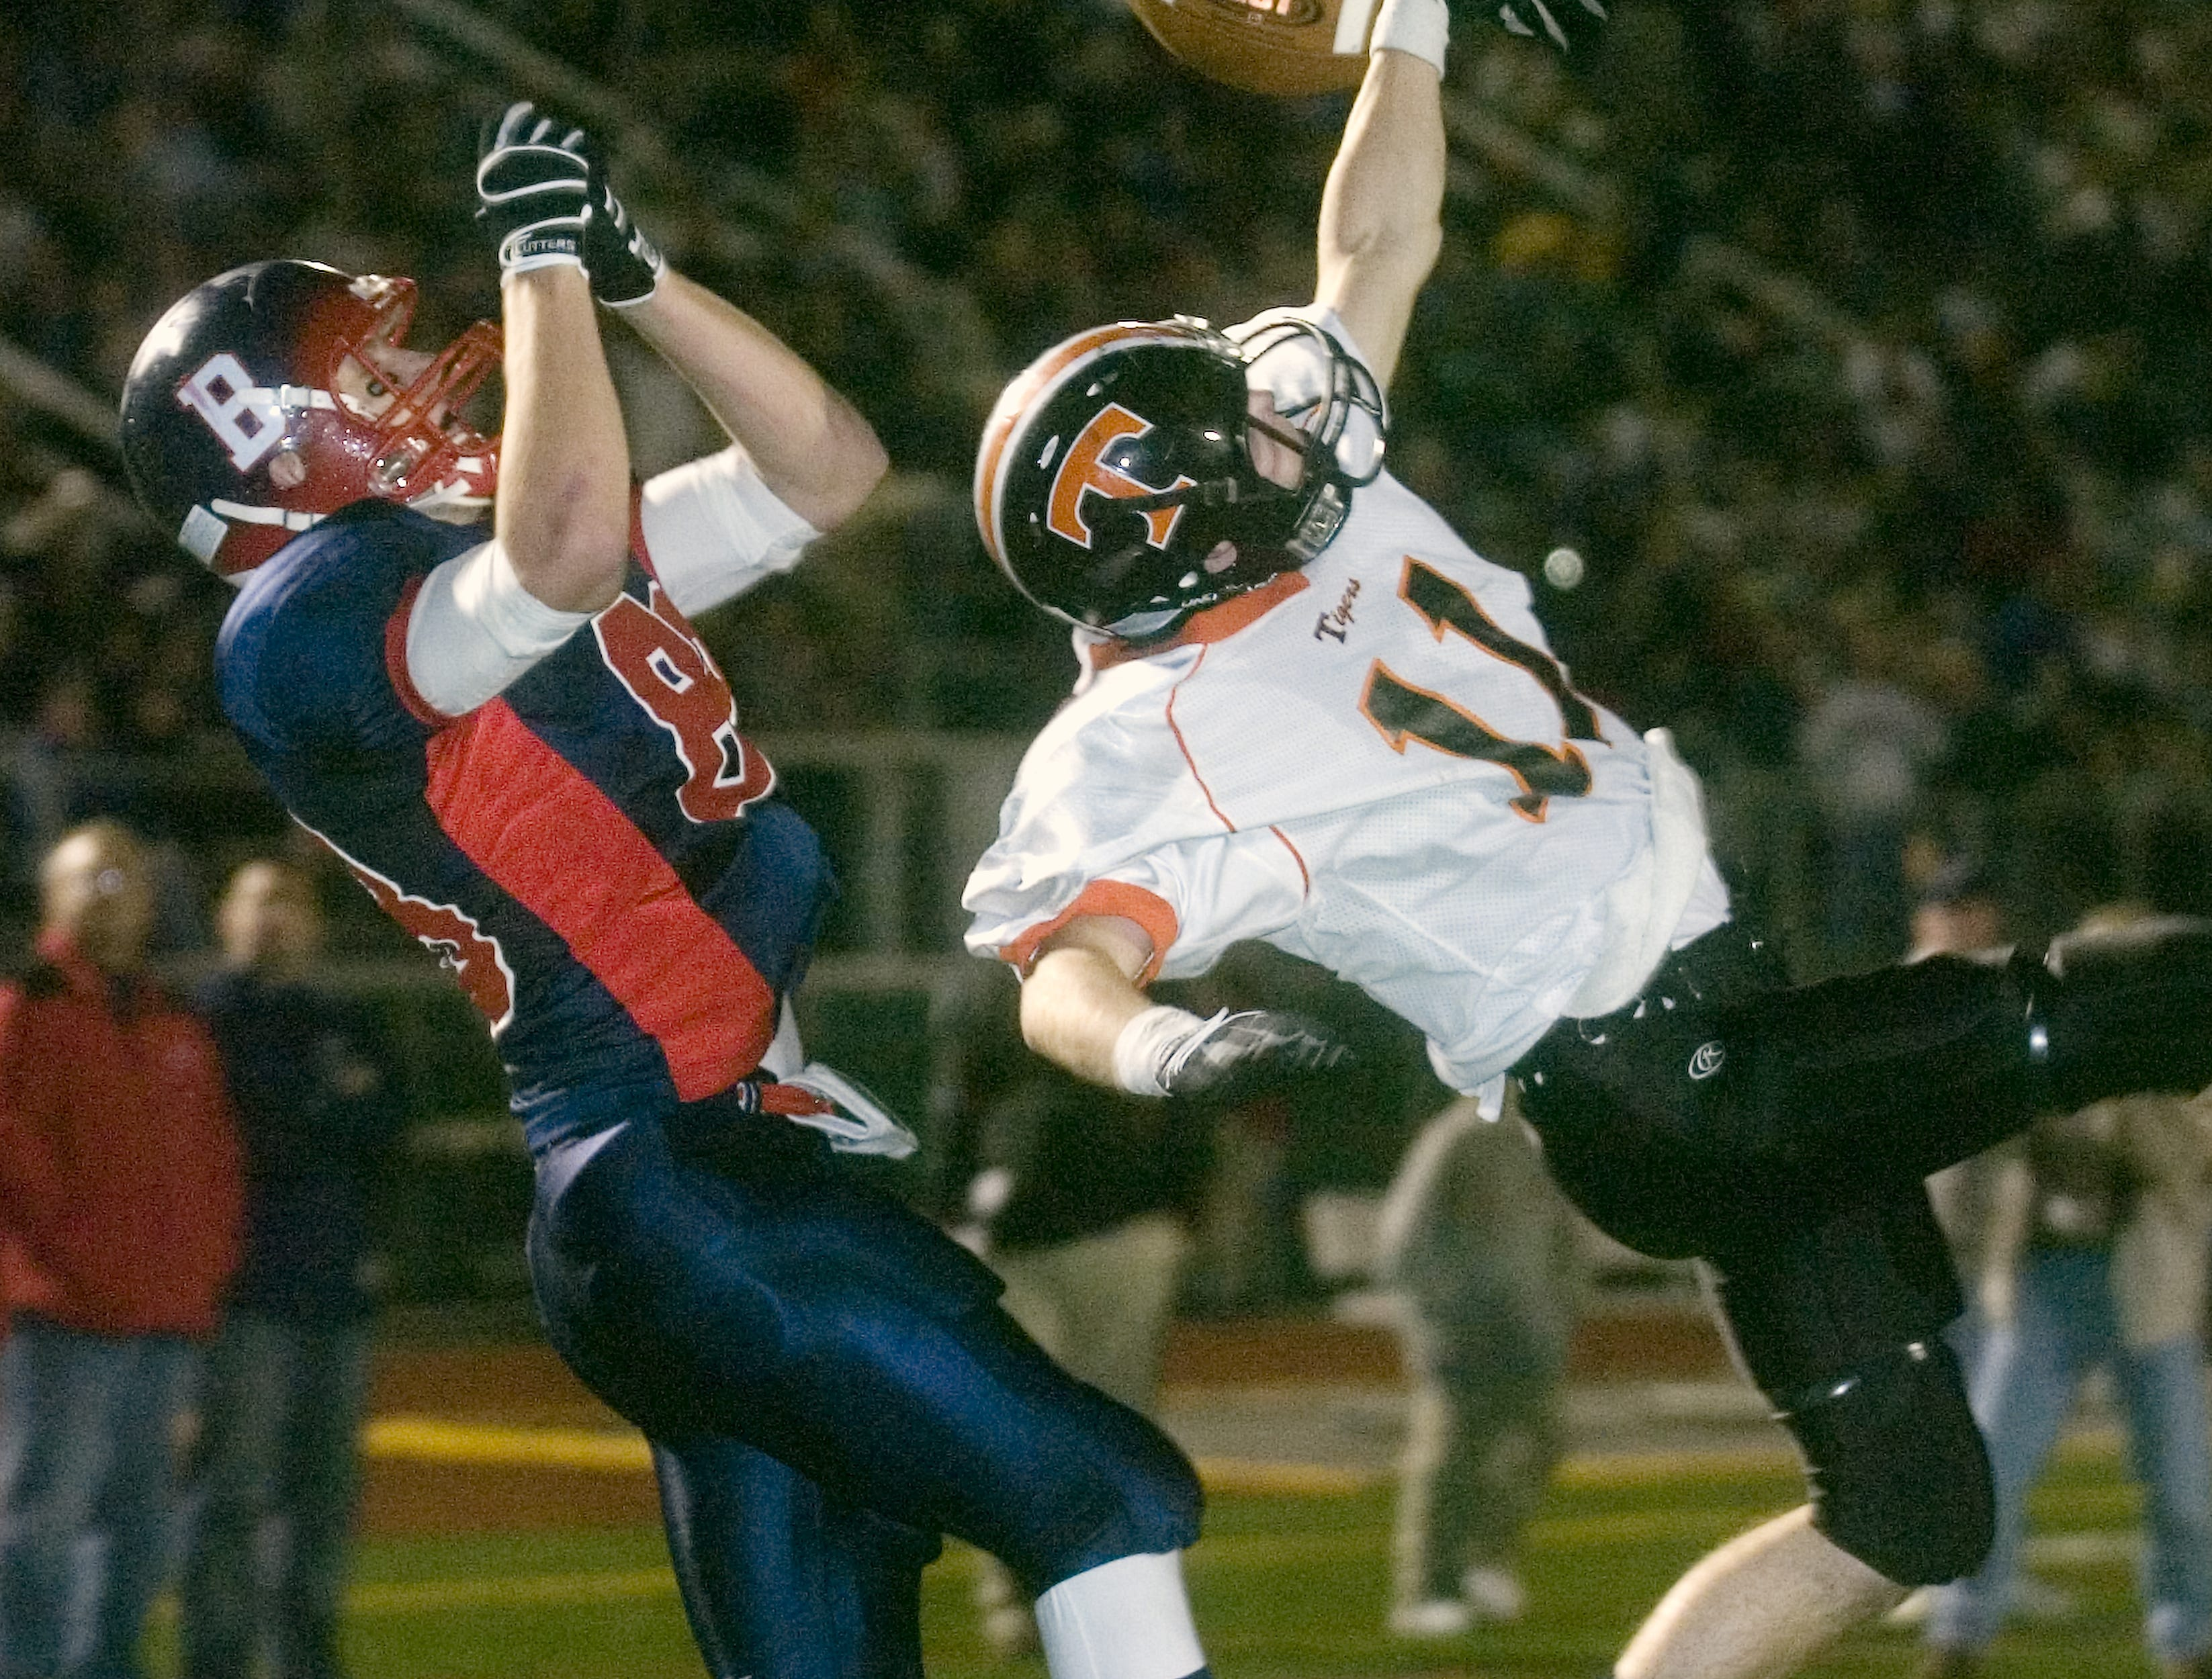 Union-Endicott's Josh Rose, right, swats away the ball intended for Binghamton's Nate Papso in the second quarter of a 2008 game at Dick Hoover Stadium.